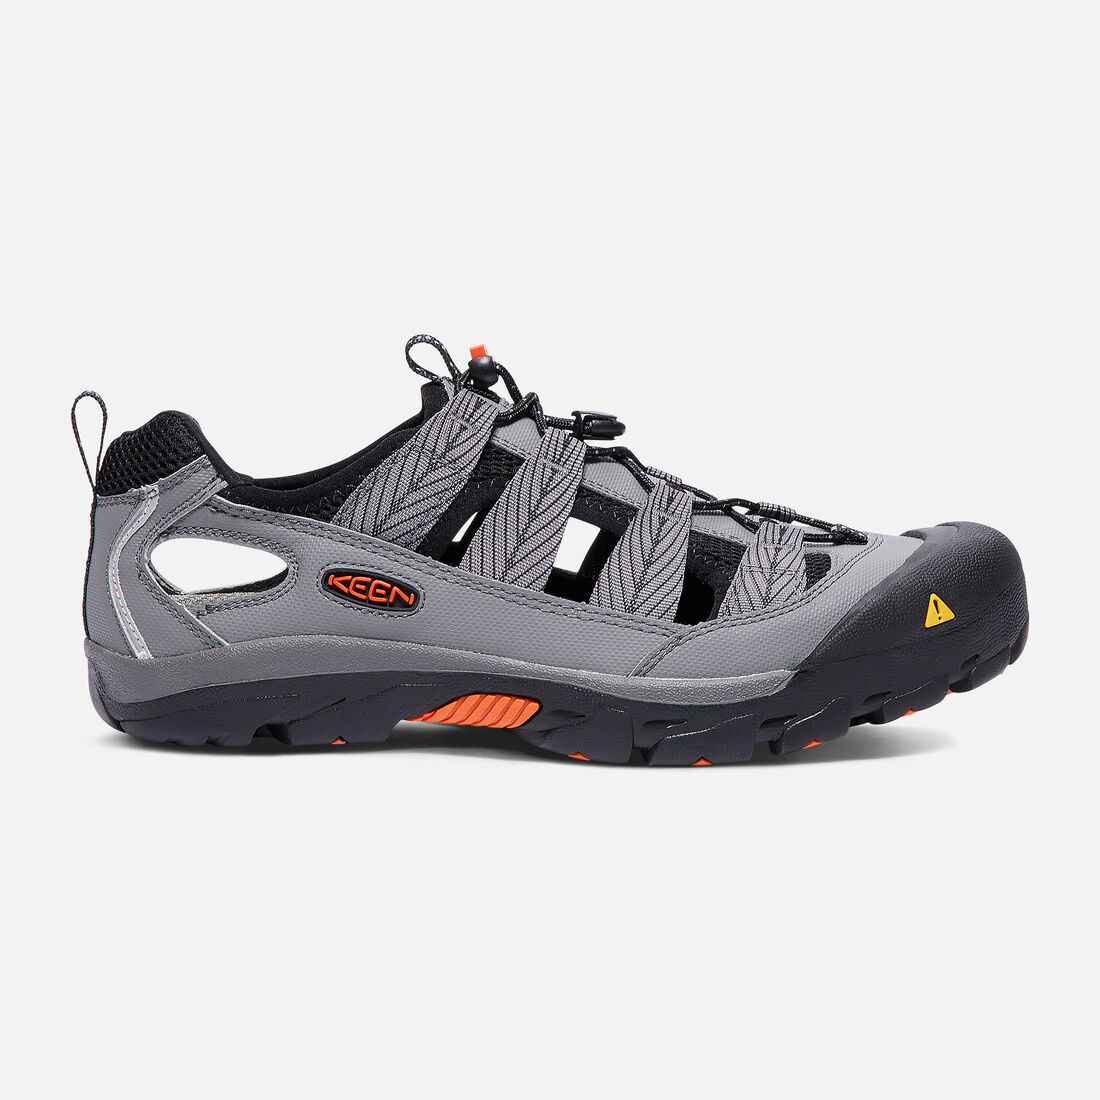 Men's Commuter IV Bike Sandal in Gargoyle/Koi - large view.